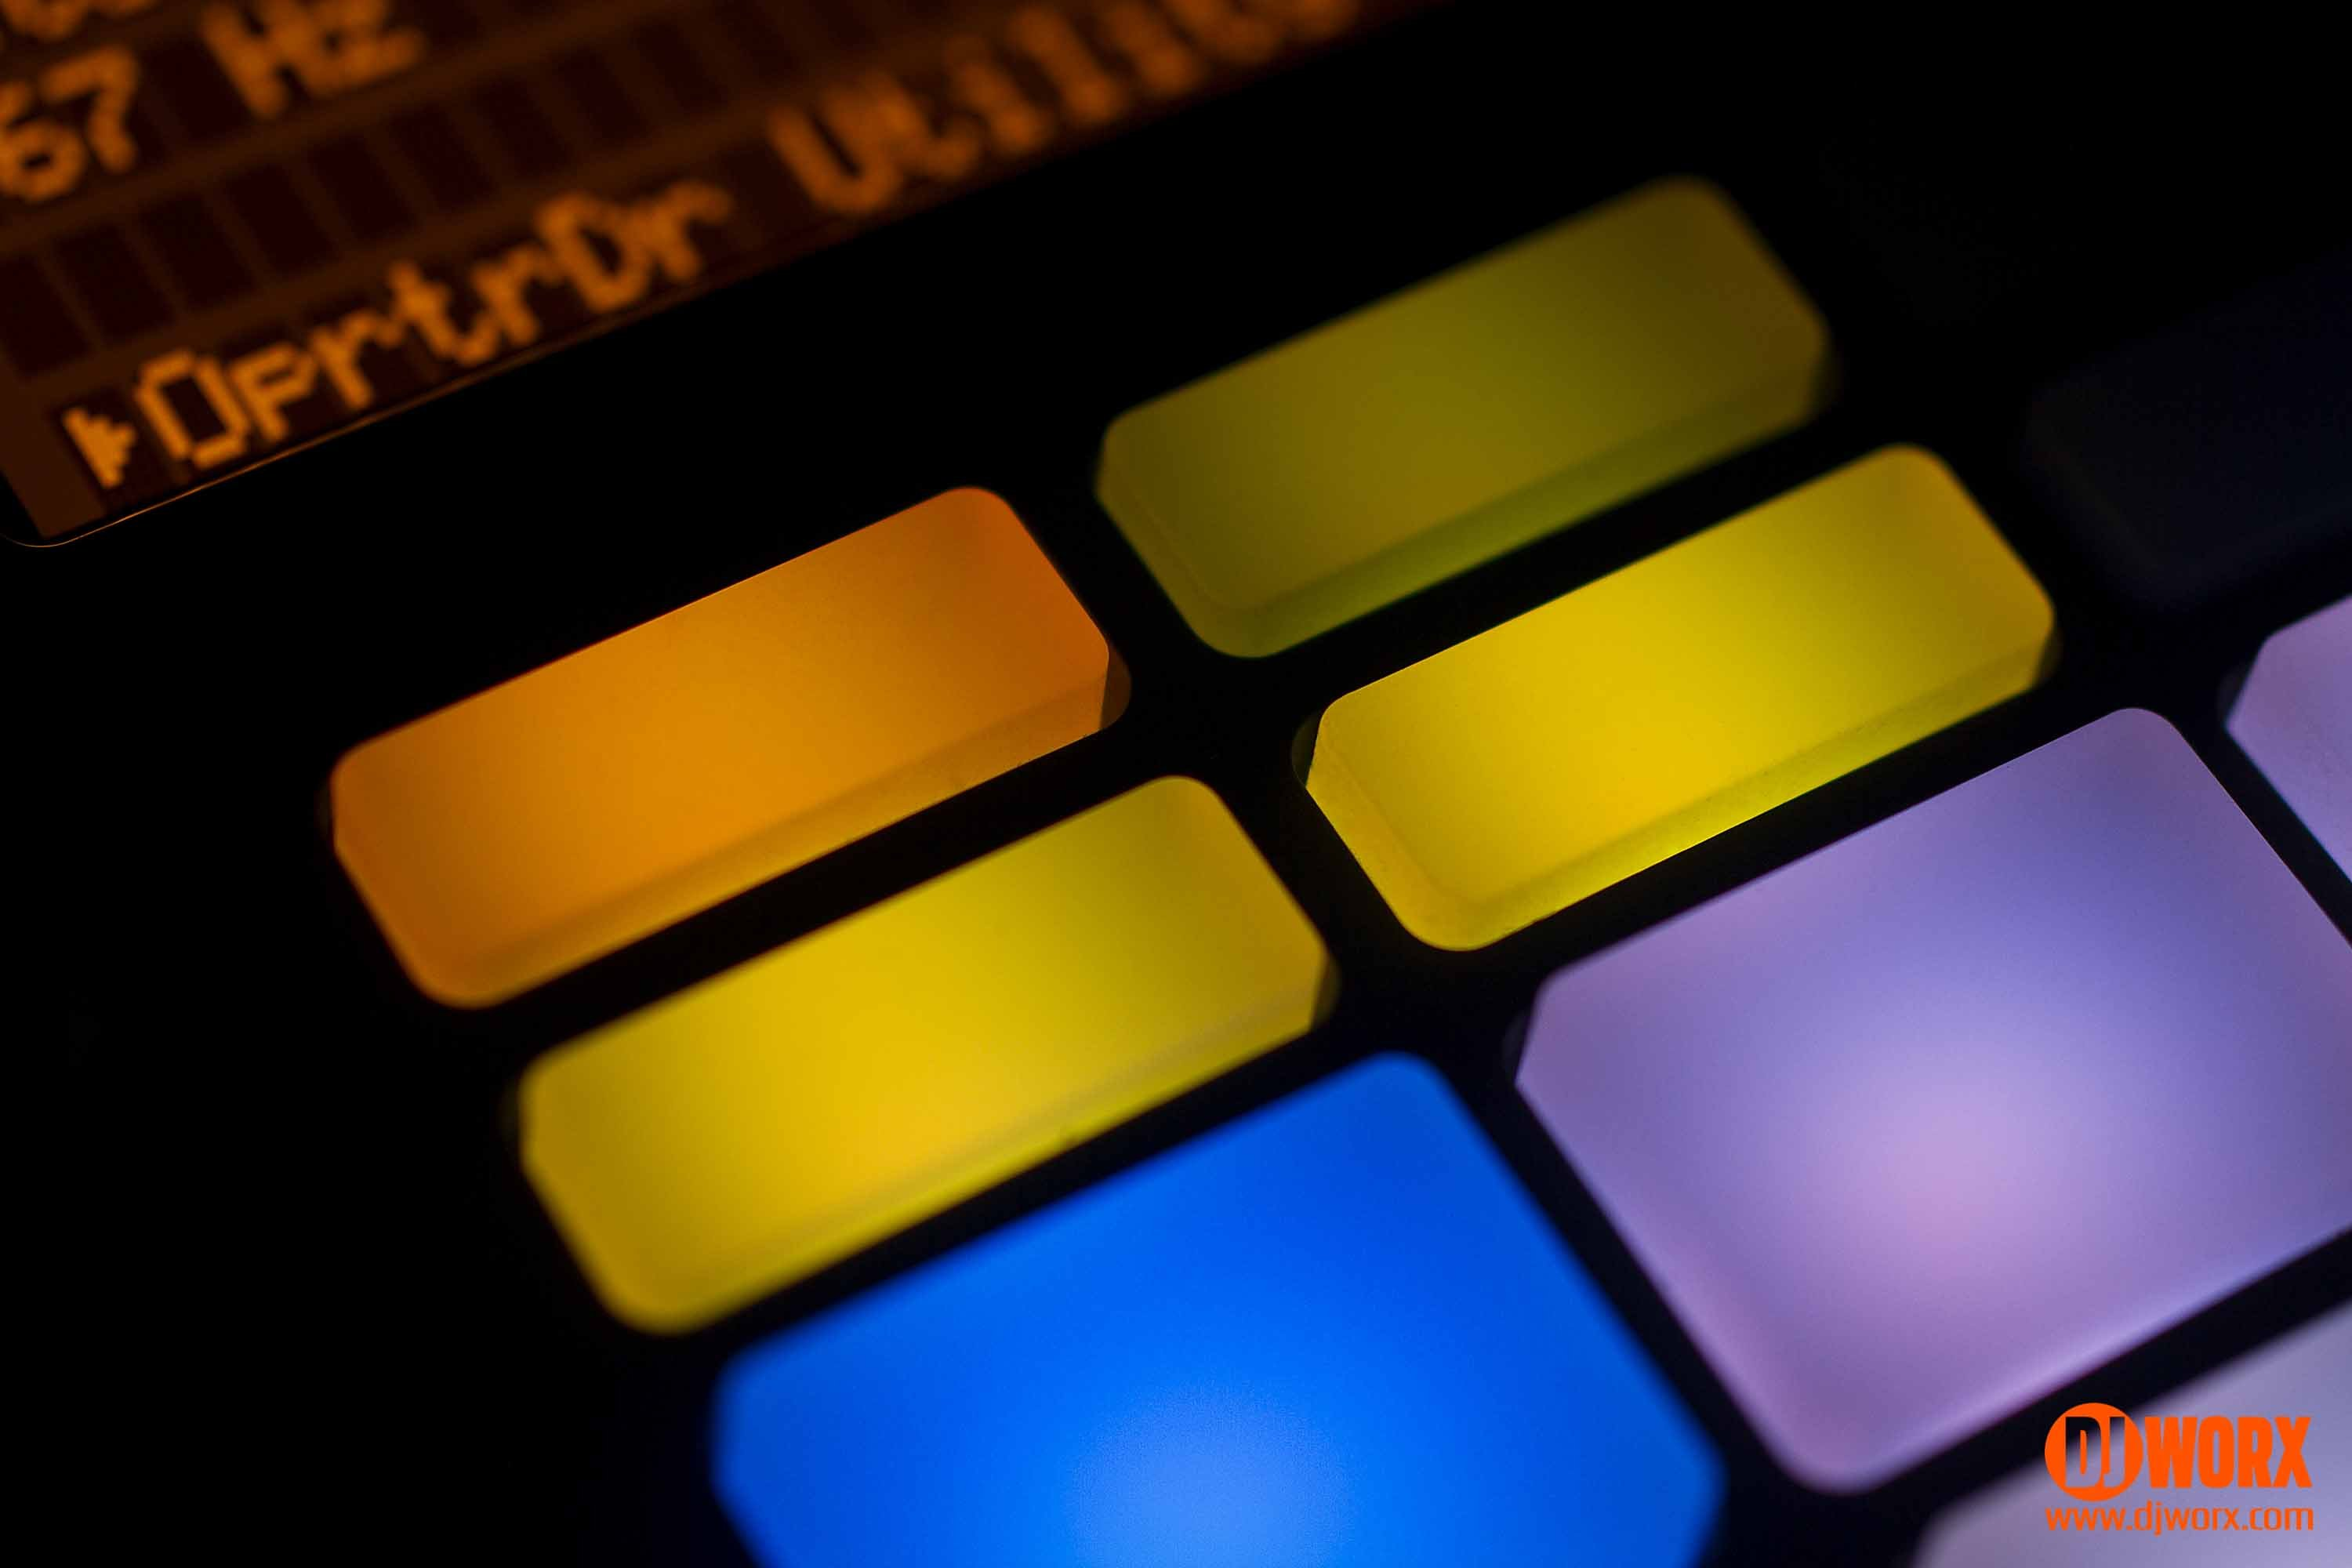 ableton push controller review (1)